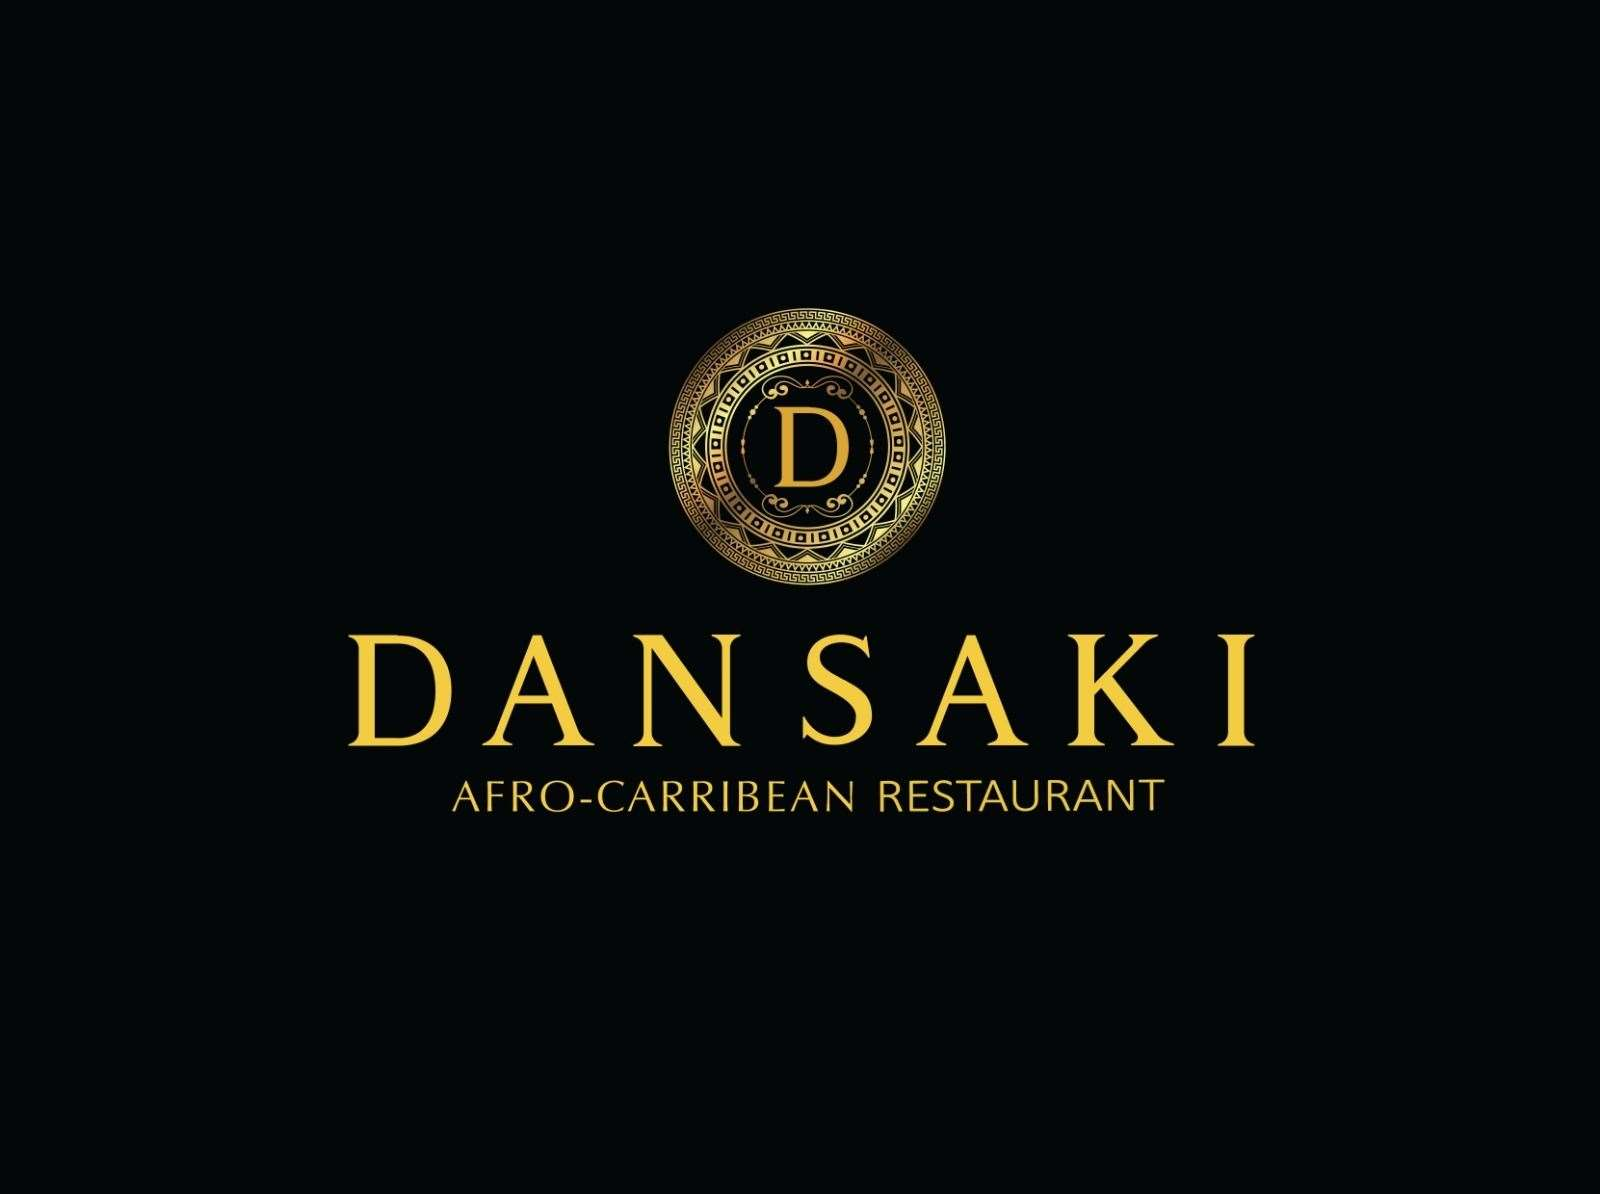 The Dansaki logo